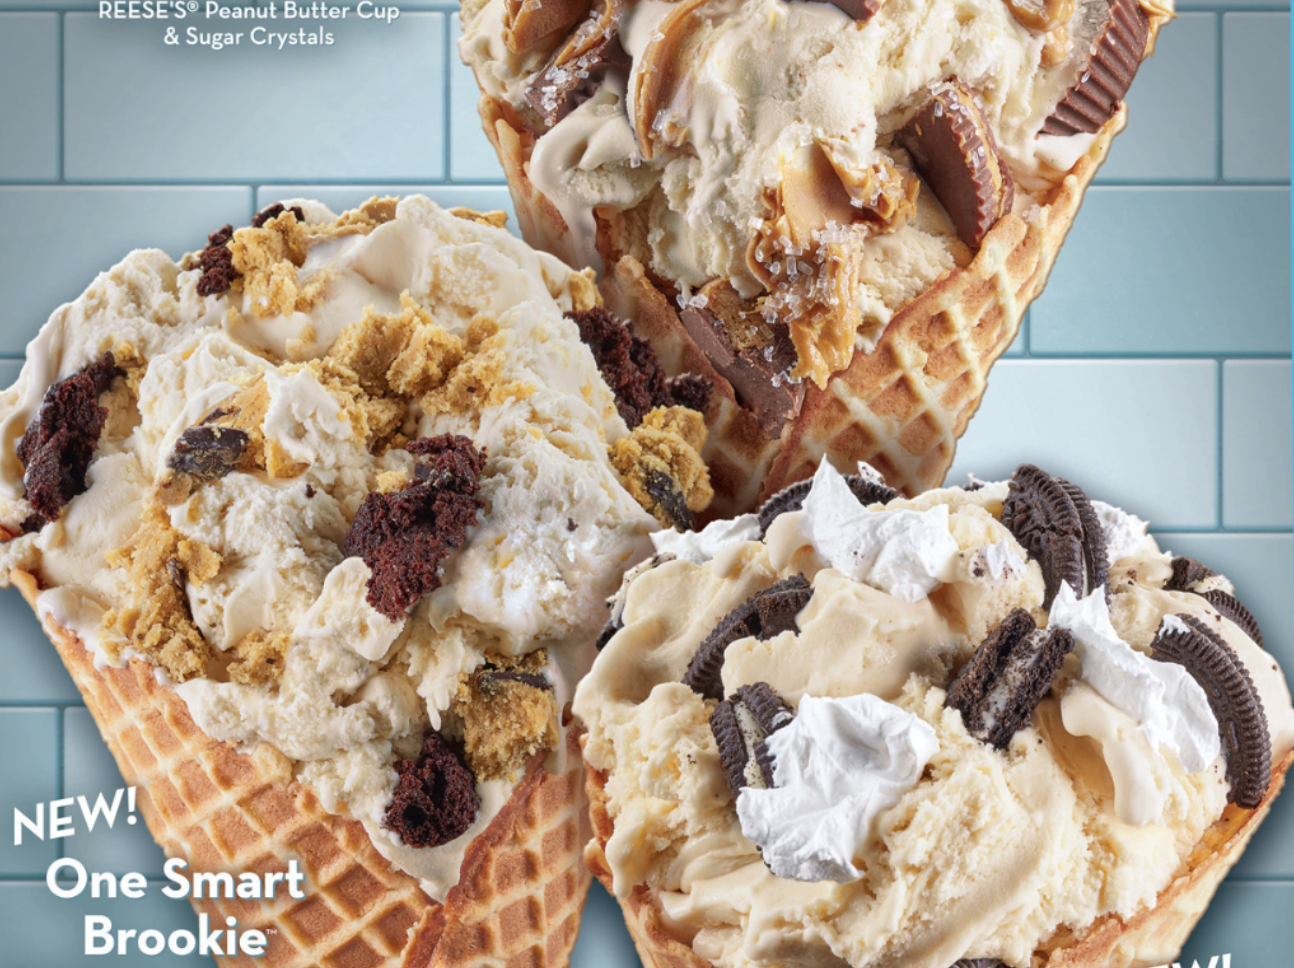 Stop What You're Doing, Cold Stone's Three New Cookie Dough Flavors Are Here